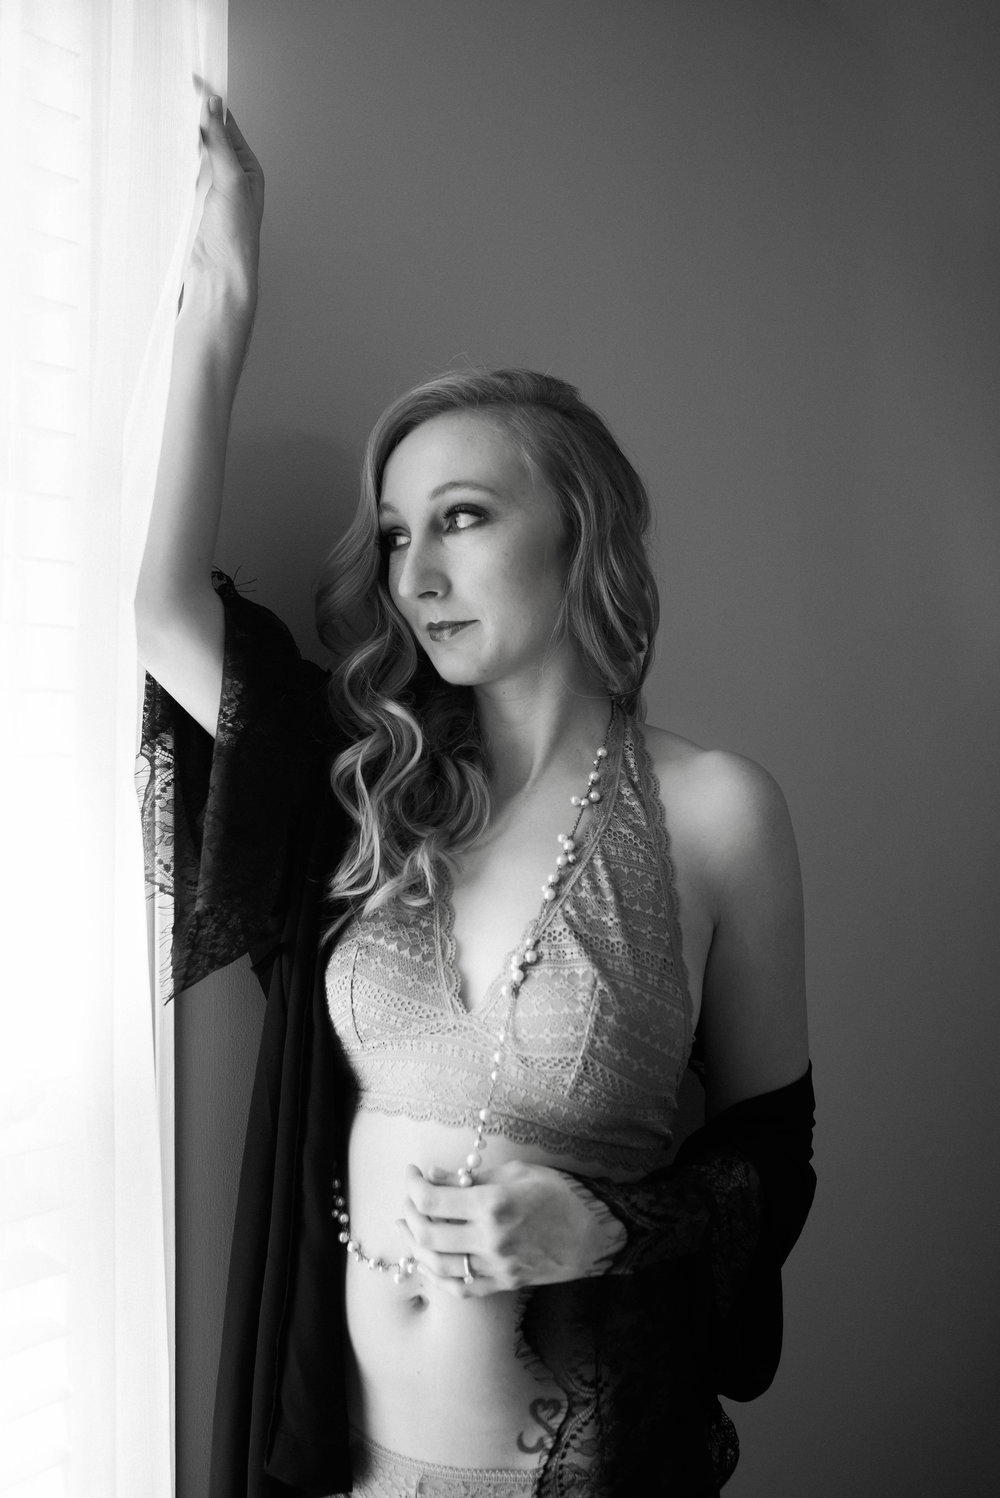 The Story of Angela - I would like to start with my why.I think so many women think of boudoir sessions as something for their significant other but my why's roots where in my self-esteem. I had always wanted to do a session even before I was married because I would see these women and could see their confidence, strength, and beauty in all their pictures. I wanted that feeling and to be able to remind myself when I needed it by looking at those pictures.I was so comfortable right from the very start! From the first message I sent, to the final product, Emma made me feel so comfortable. At our first meeting I was so nervous and I'm not going to lie a little terrified to be discussing taking picture of me in pretty much nothing. But she made sure to get to know me before even diving into the session details, so when it came time to discuss outfits, poses and my